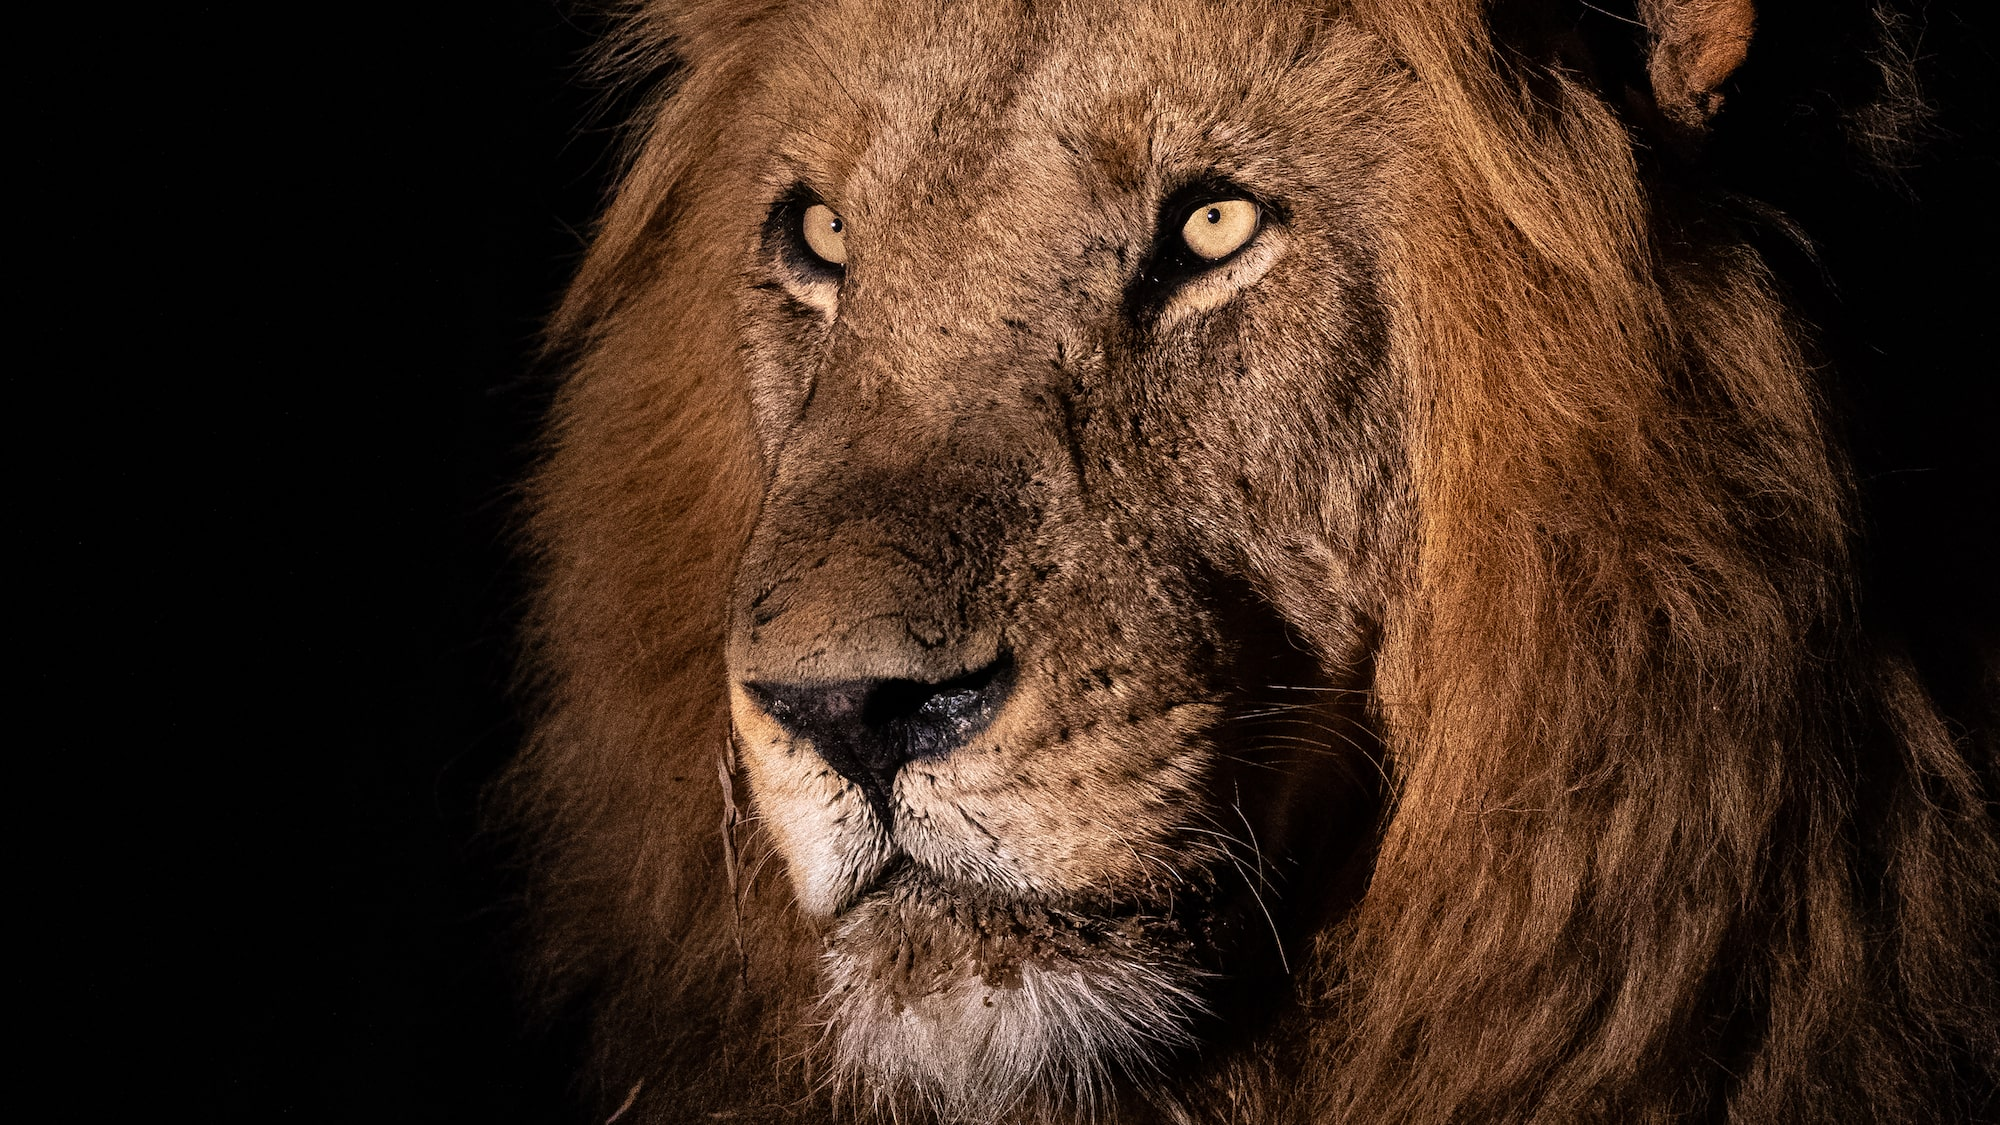 Male lion in the safari at night